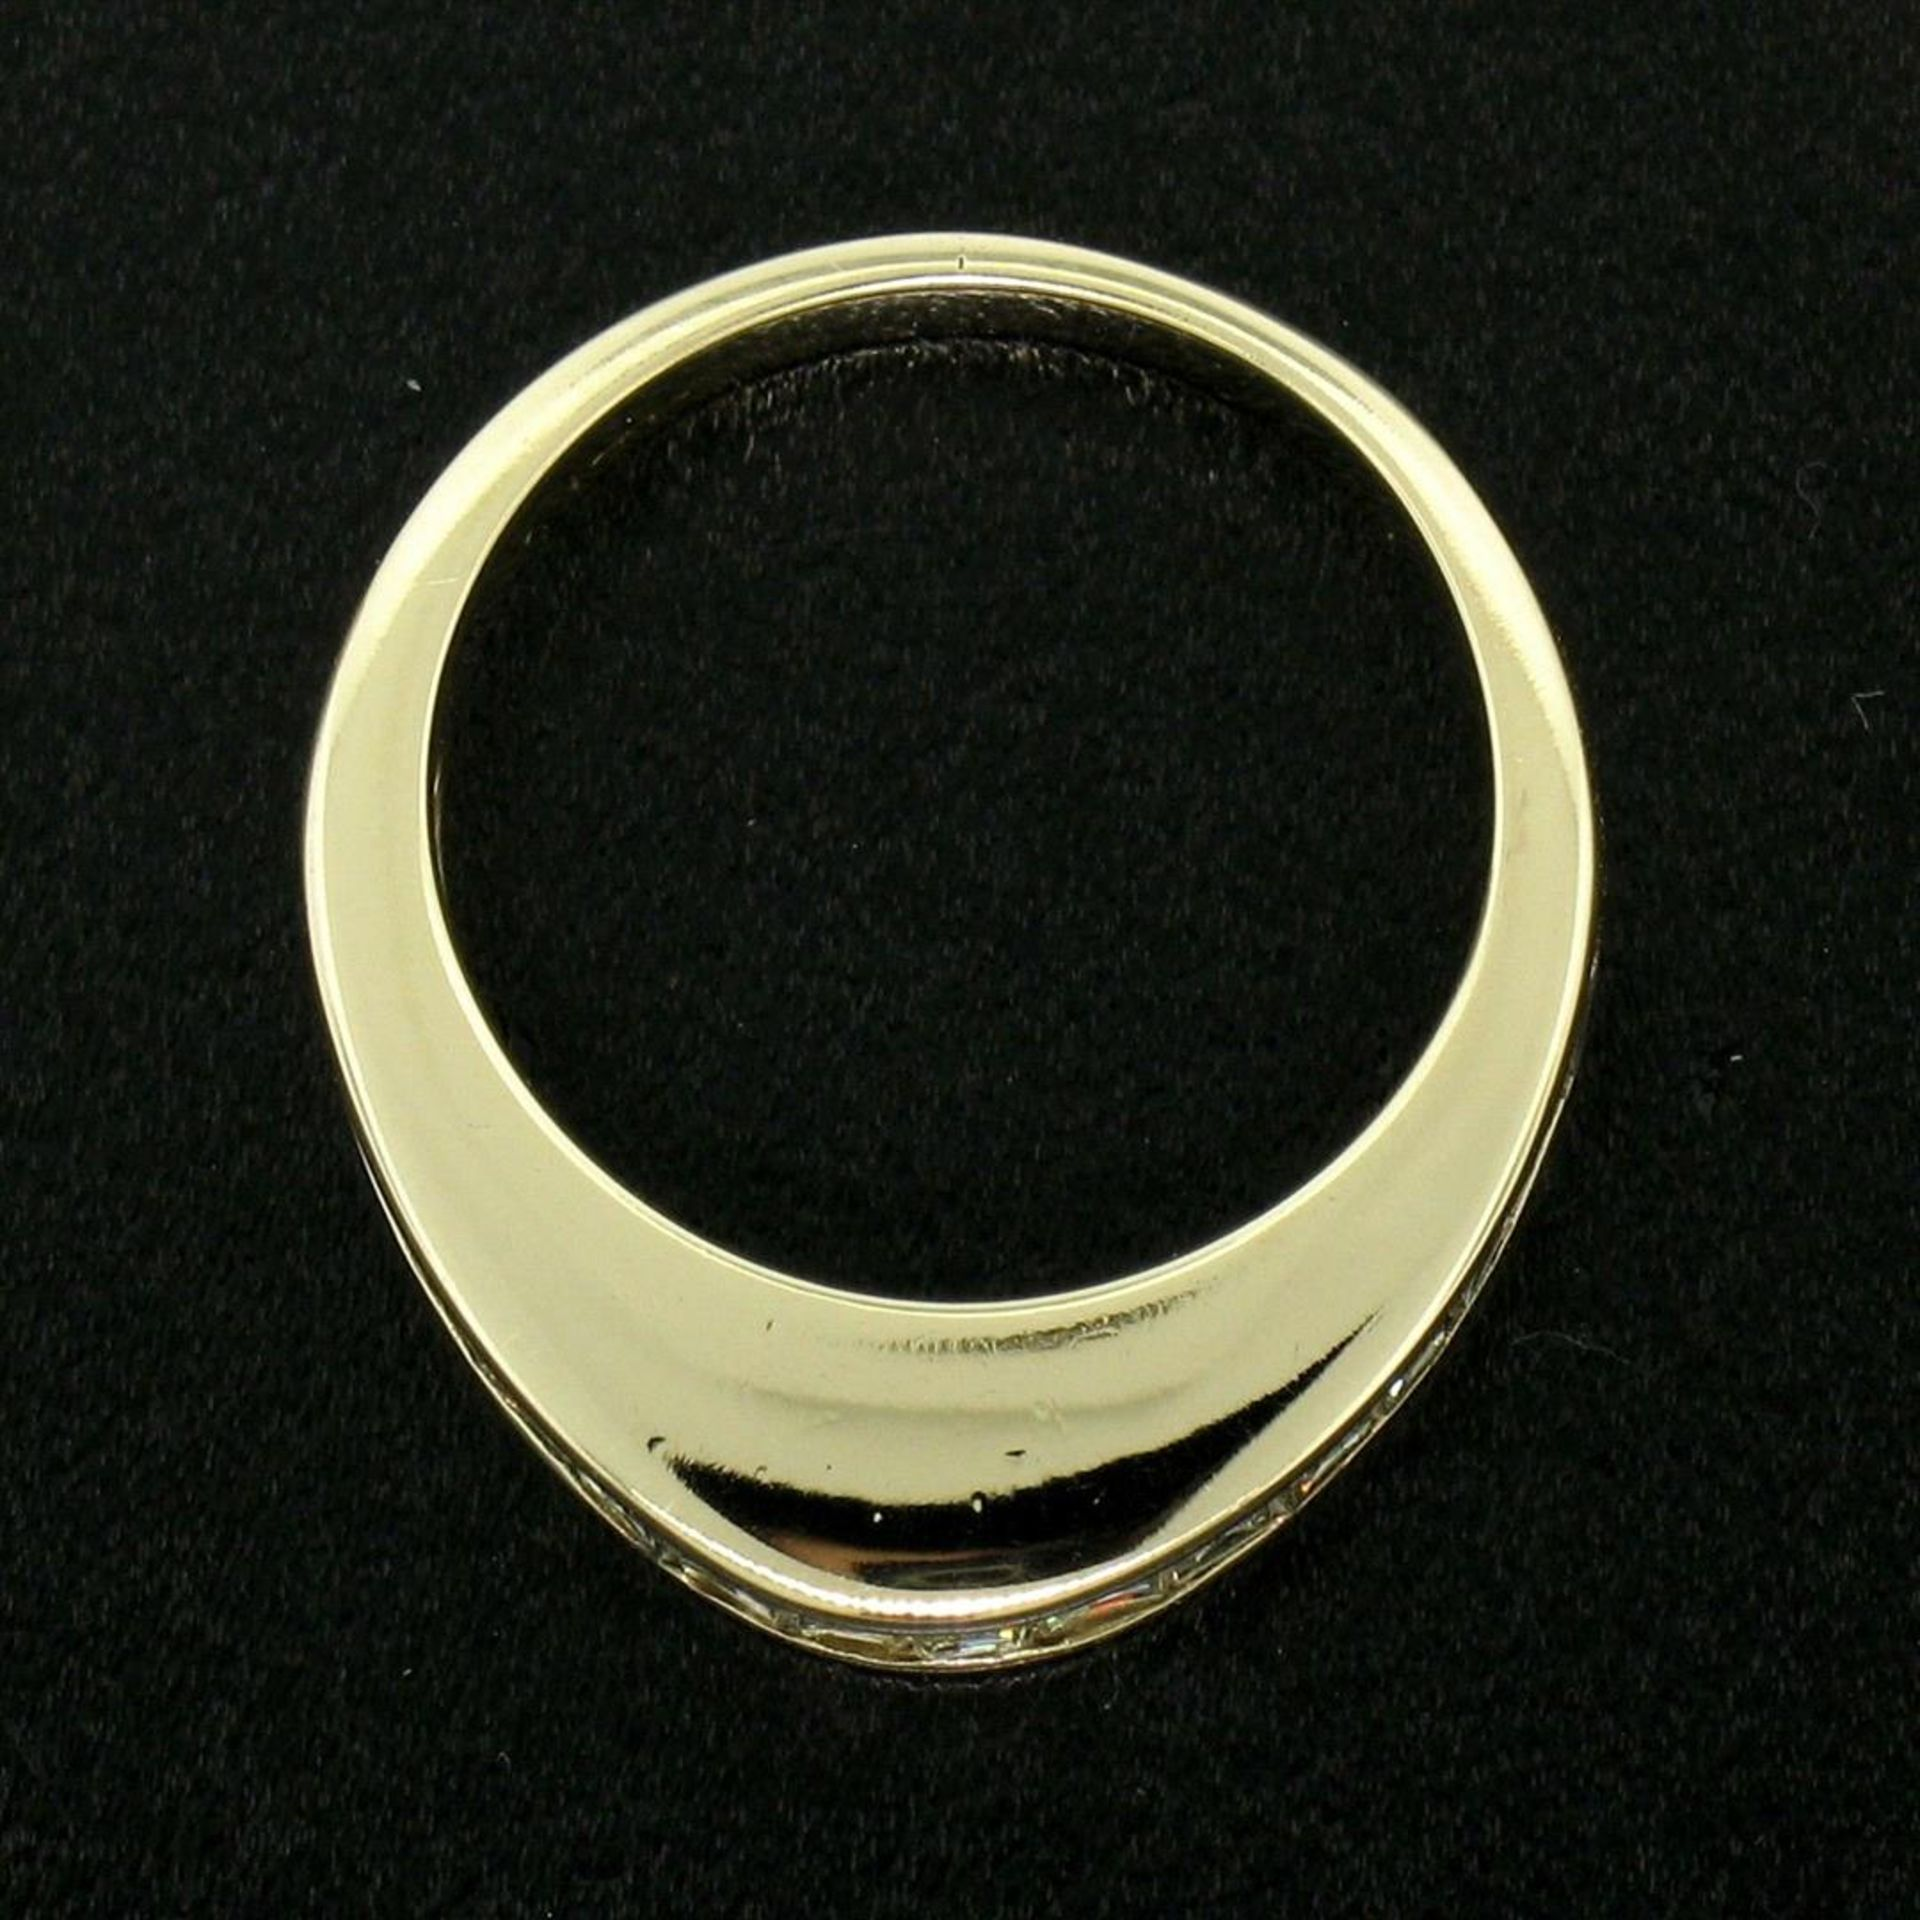 14kt Yellow Gold 1.00 ctw Baguette Diamond Channel Domed Wedding Band Ring - Image 7 of 9